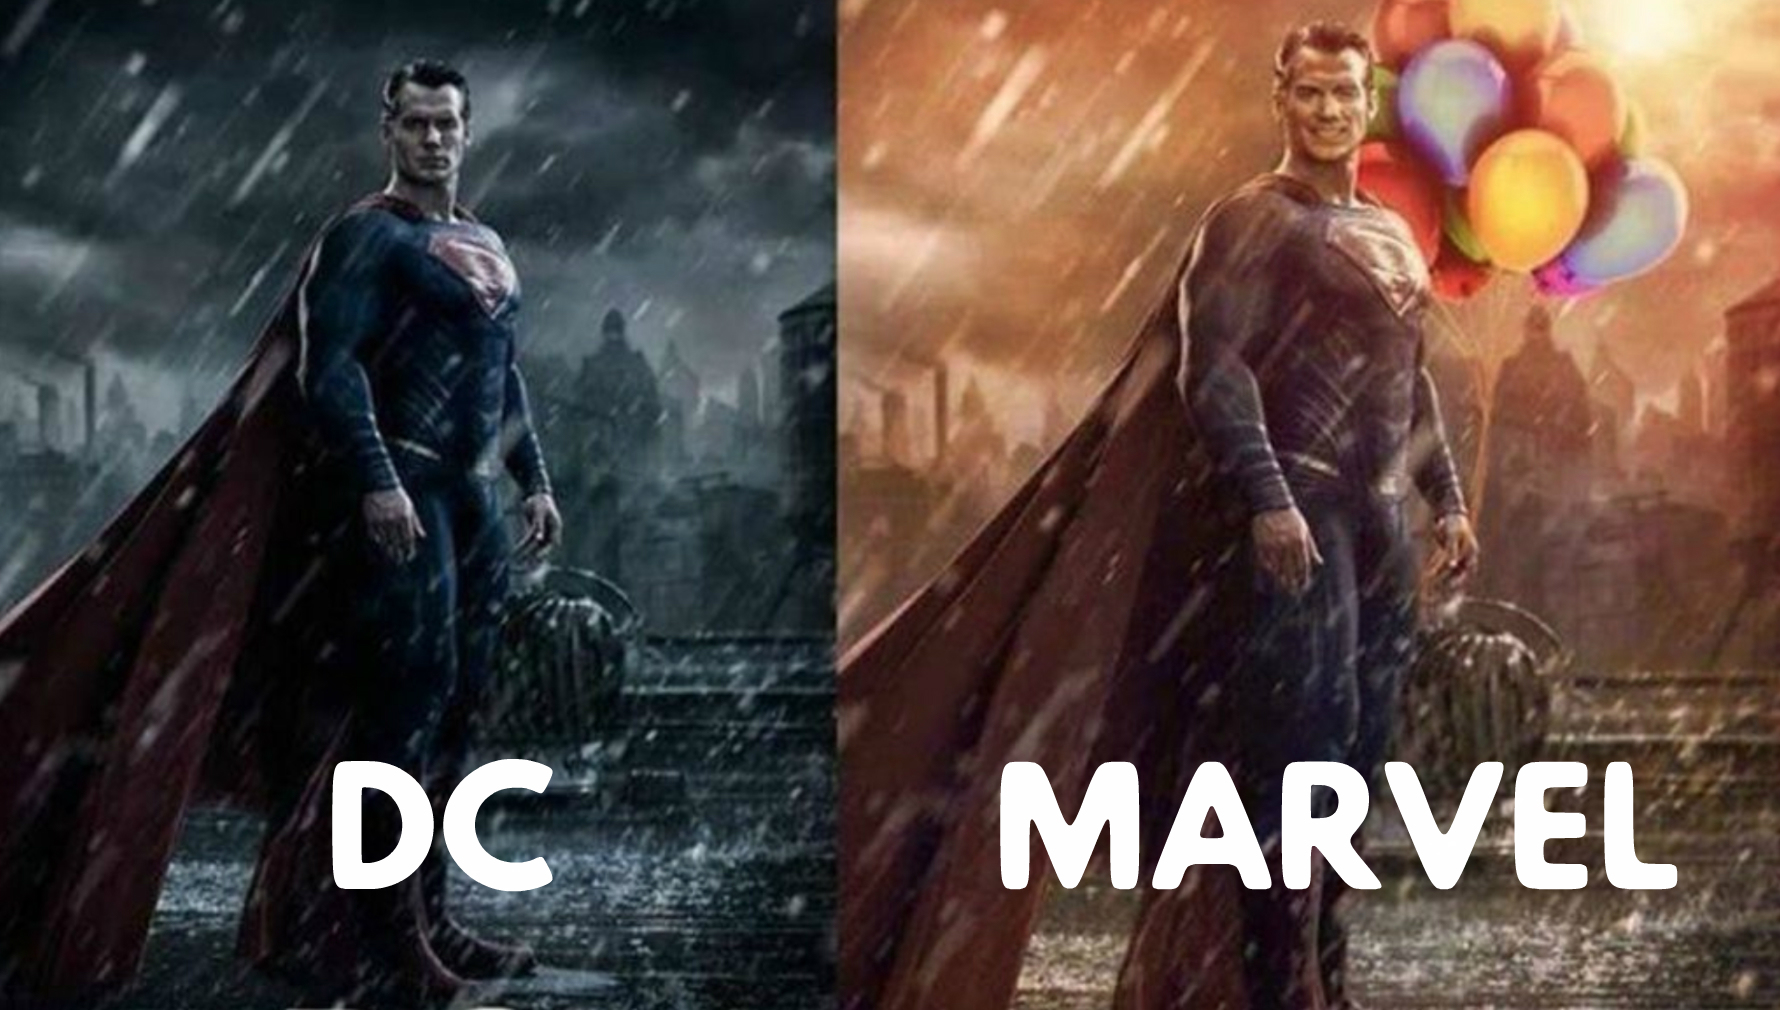 [Источник](https://www.quirkybyte.com/blog/2017/11/epic-marvel-vs-dc-memes/)